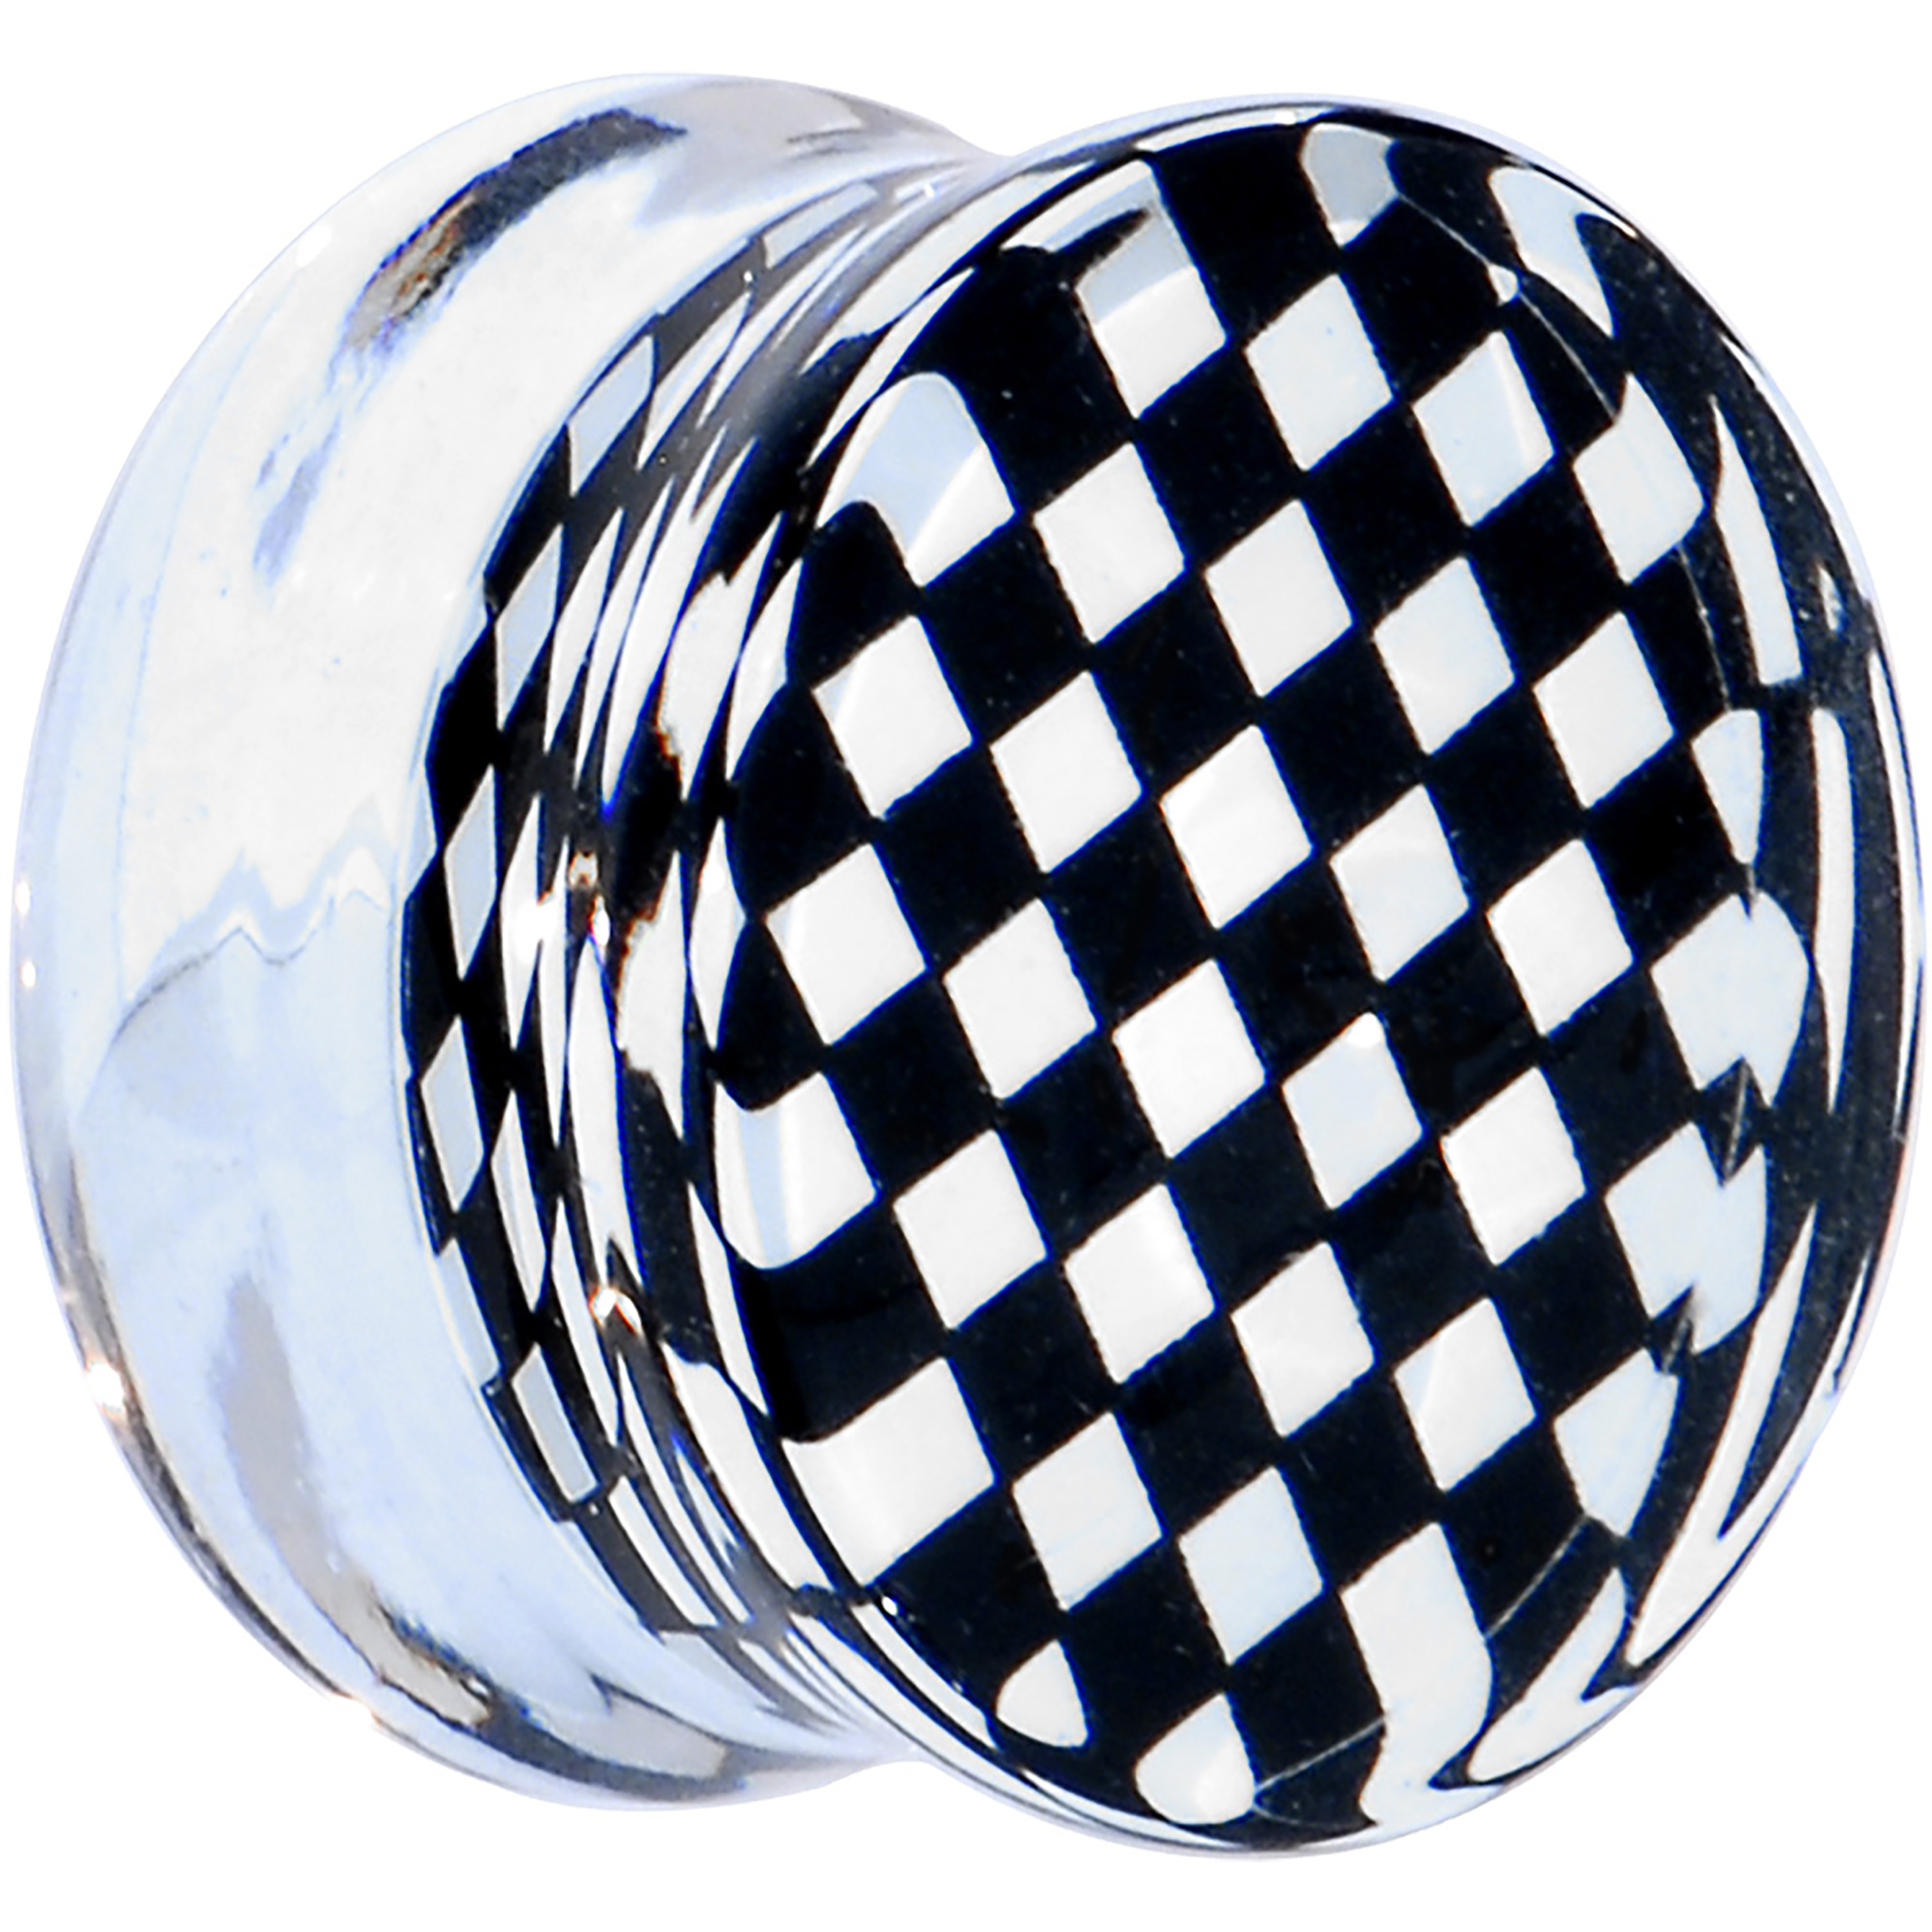 Body Candy Clear Acrylic Black and White Checker Inlay Saddle Plug (1 Piece) 00 Gauge